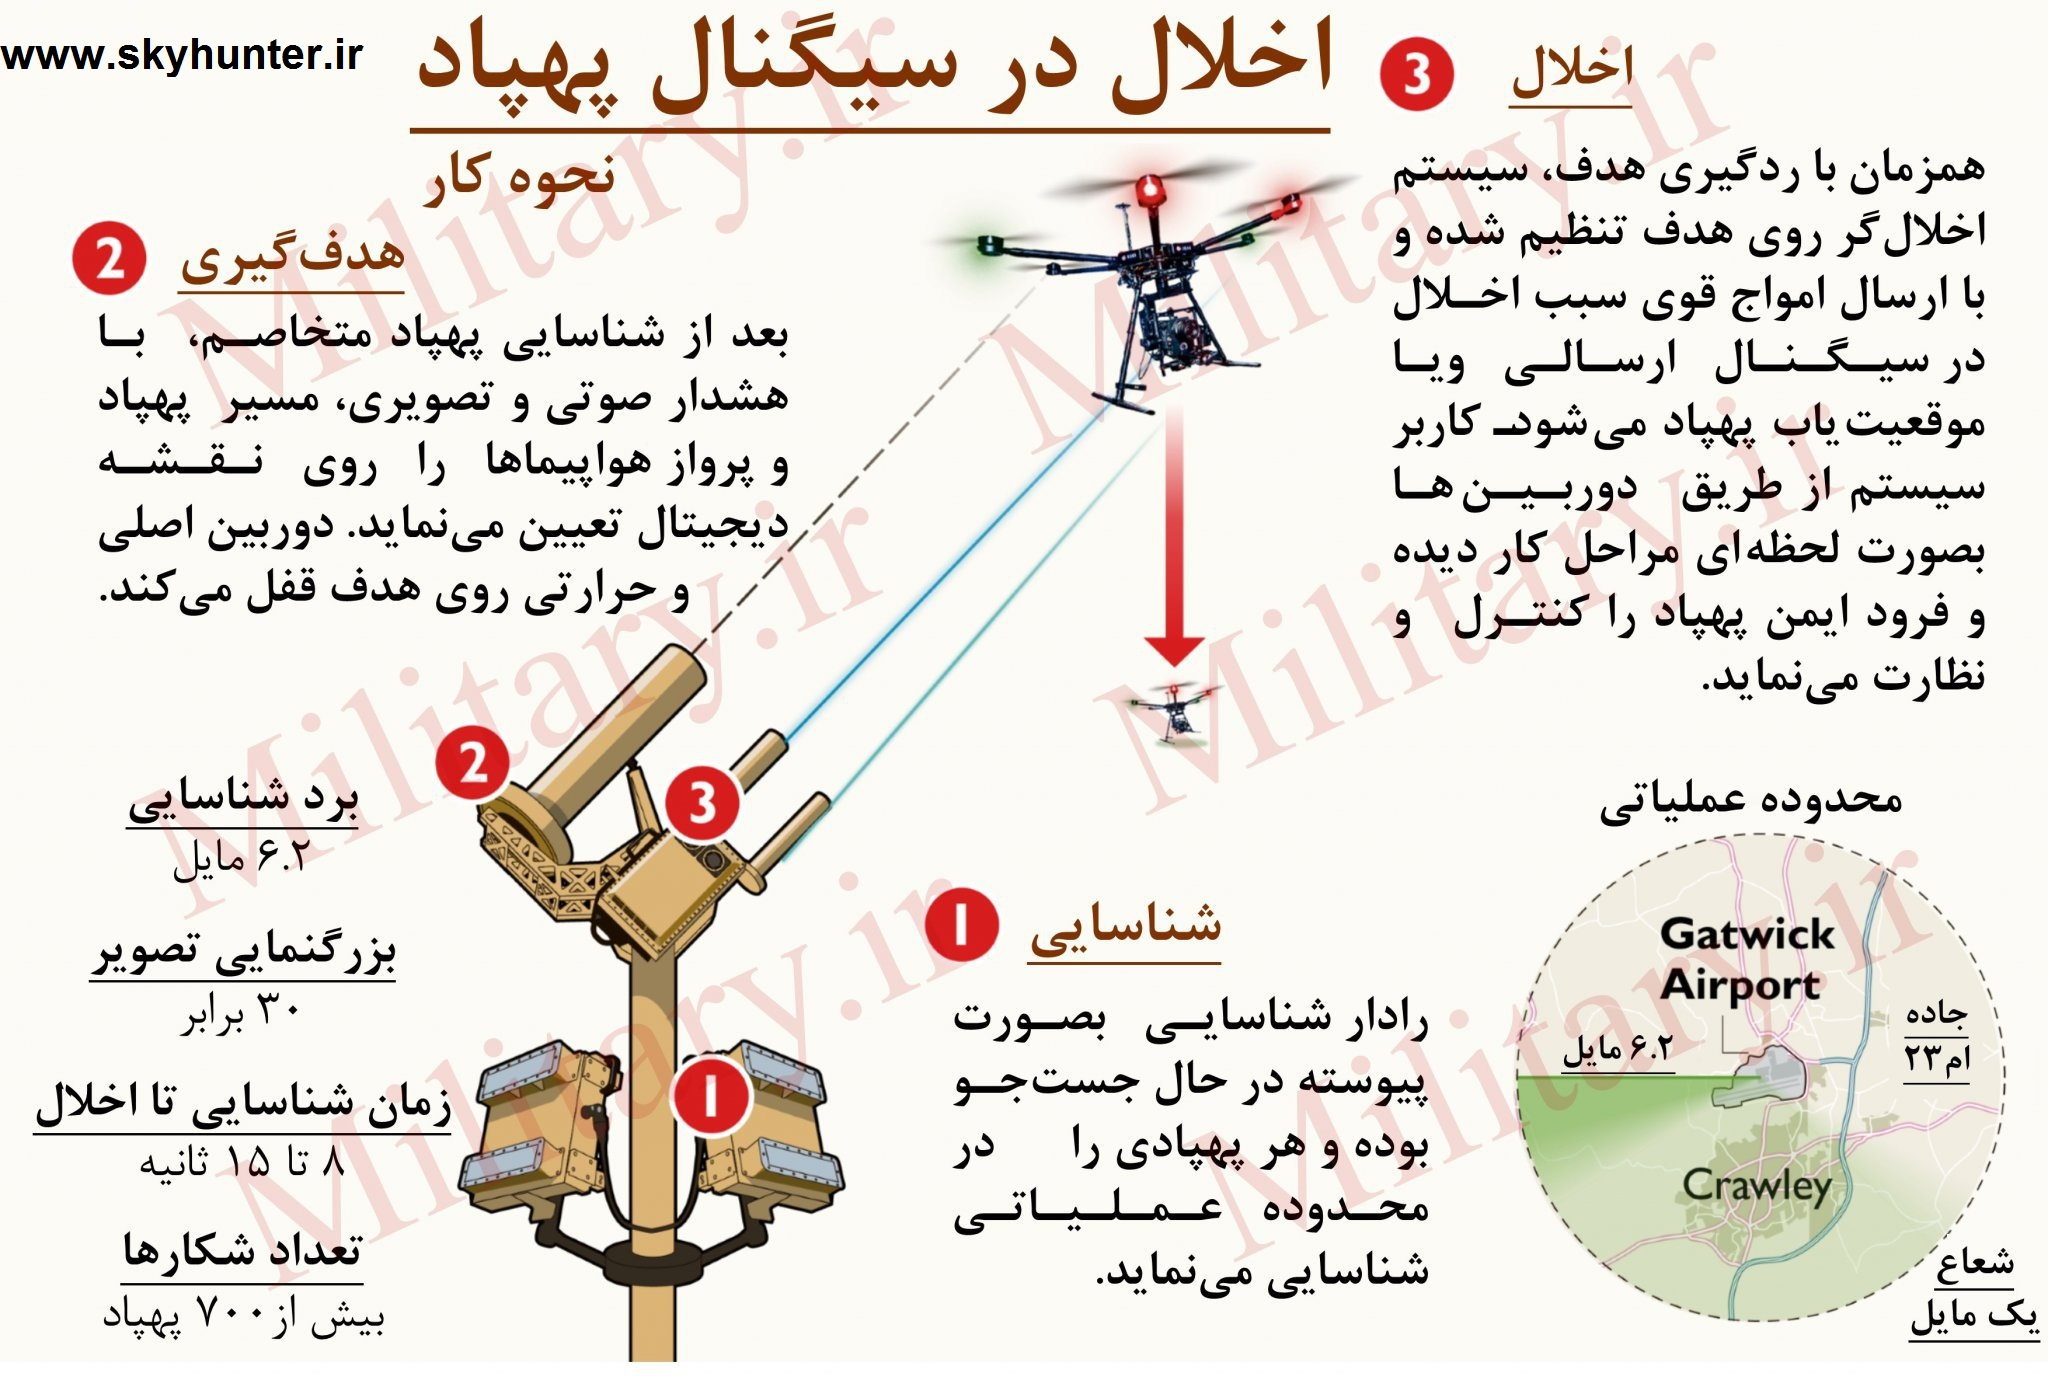 http://s16.picofile.com/file/8413120518/021_anti_UAV_02_military_ir.jpg